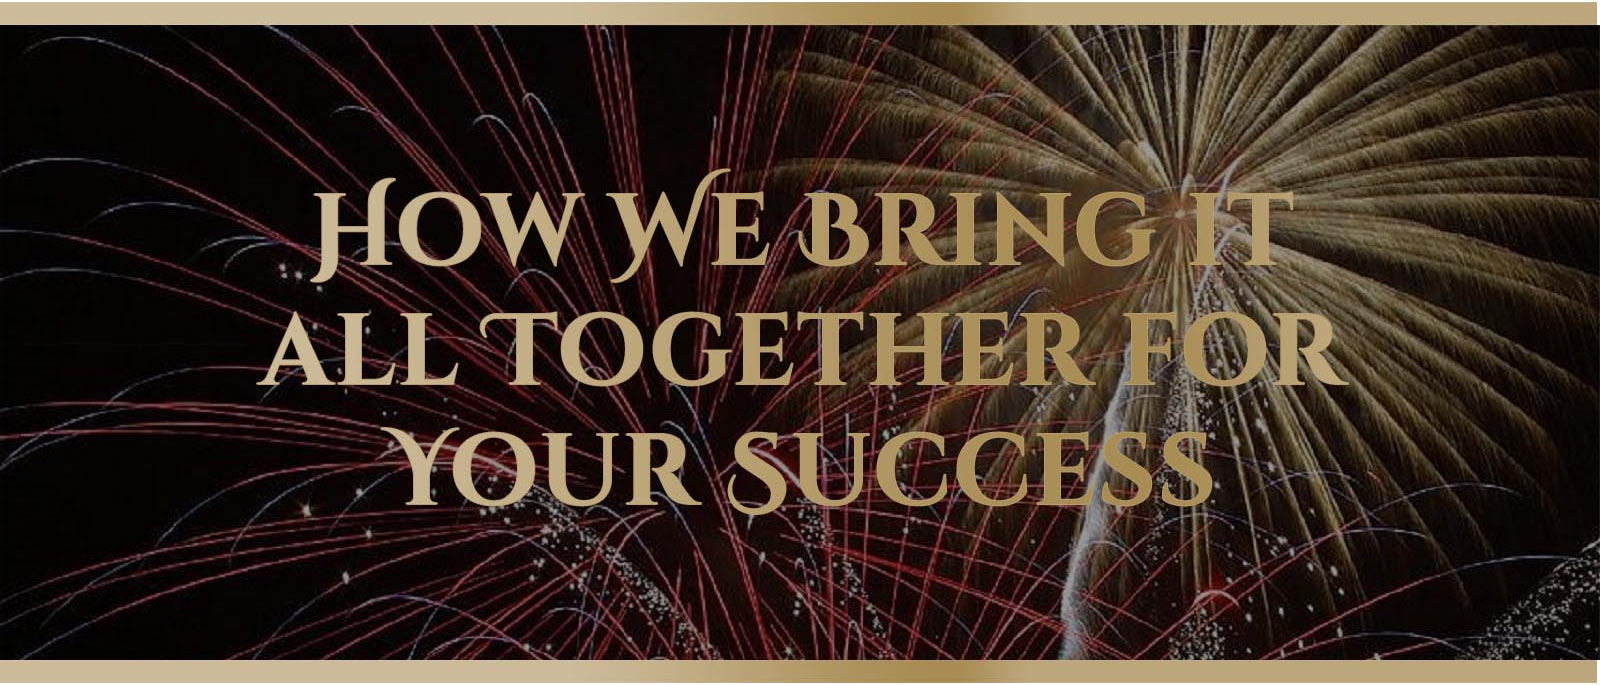 about-us-how-we-bring-all-together-for-your-success